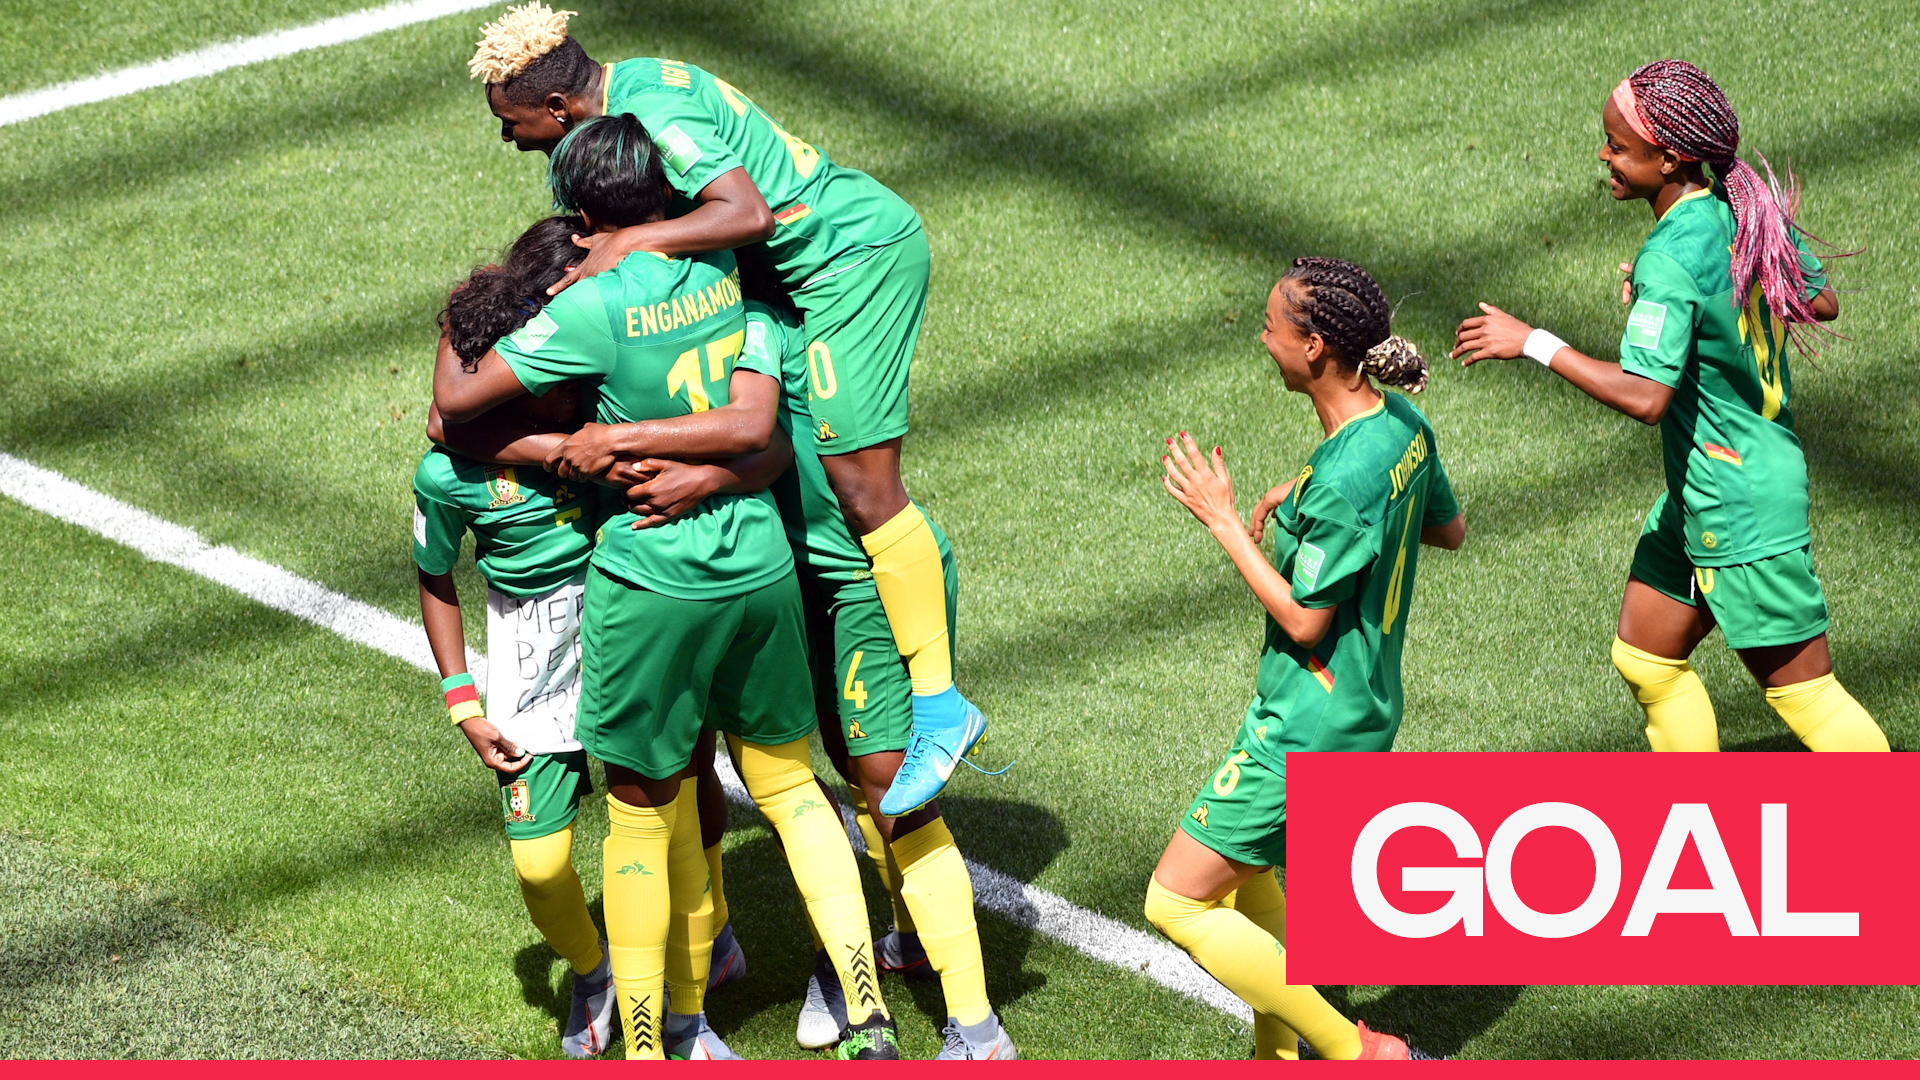 Women's World Cup 2019: Gabrielle Onguene replies for Cameroon making it 1-1